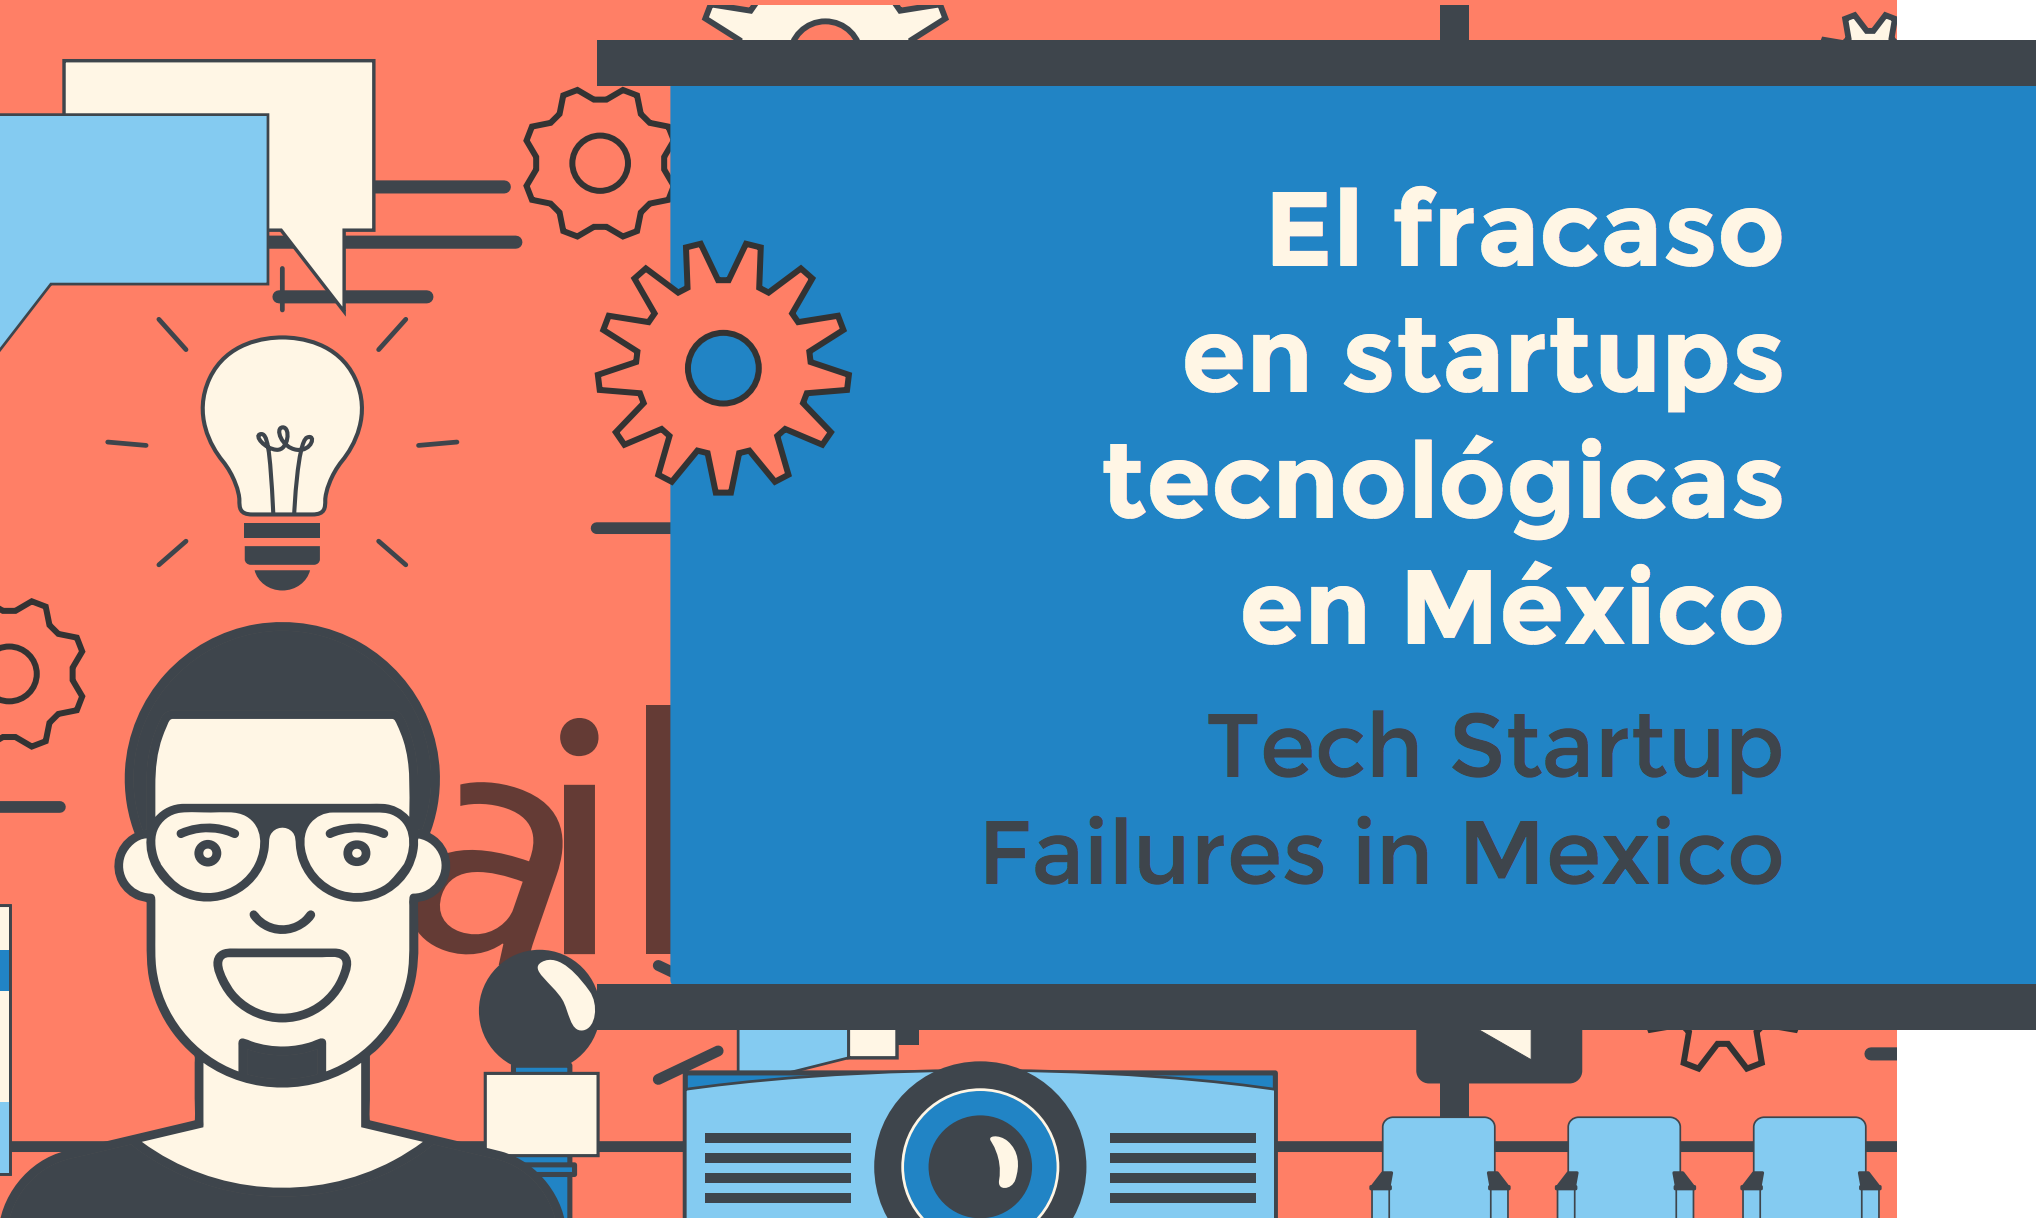 El fracaso en startups tecnológicas en México, un estudio de The Failure Institute